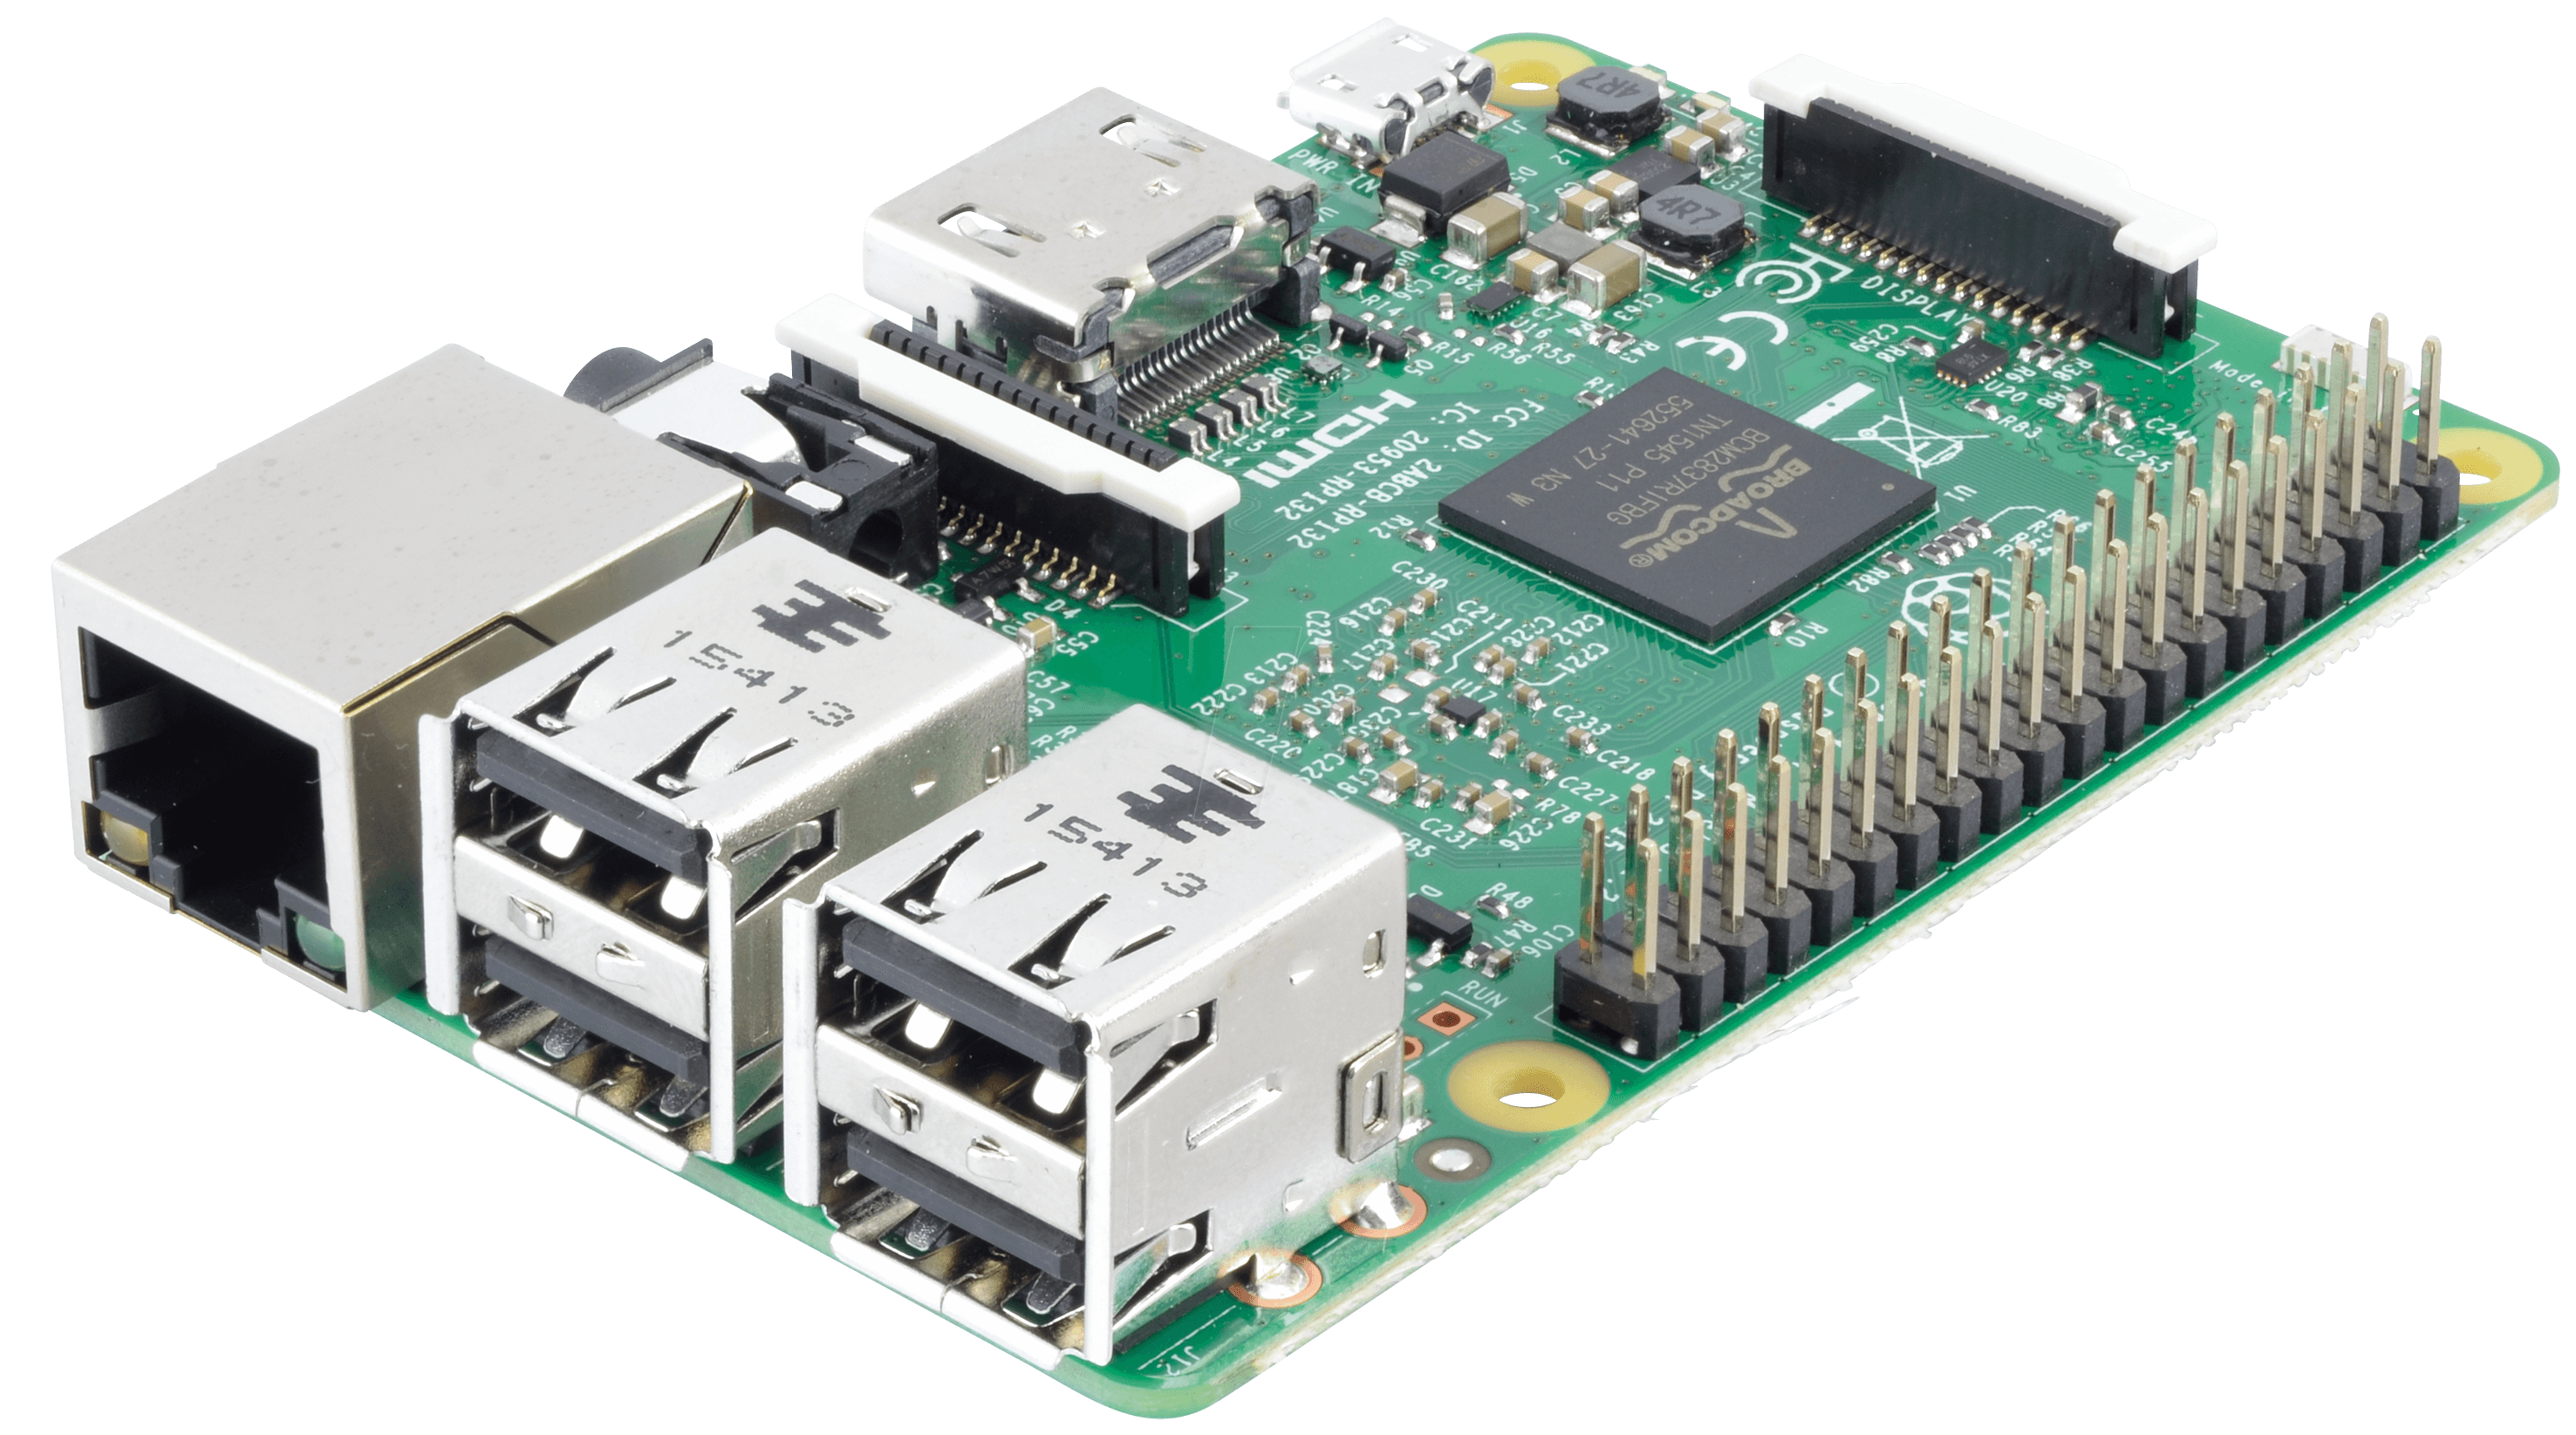 The Raspberry Pi Tutorial – A Beginner's Guide from thepihut.com